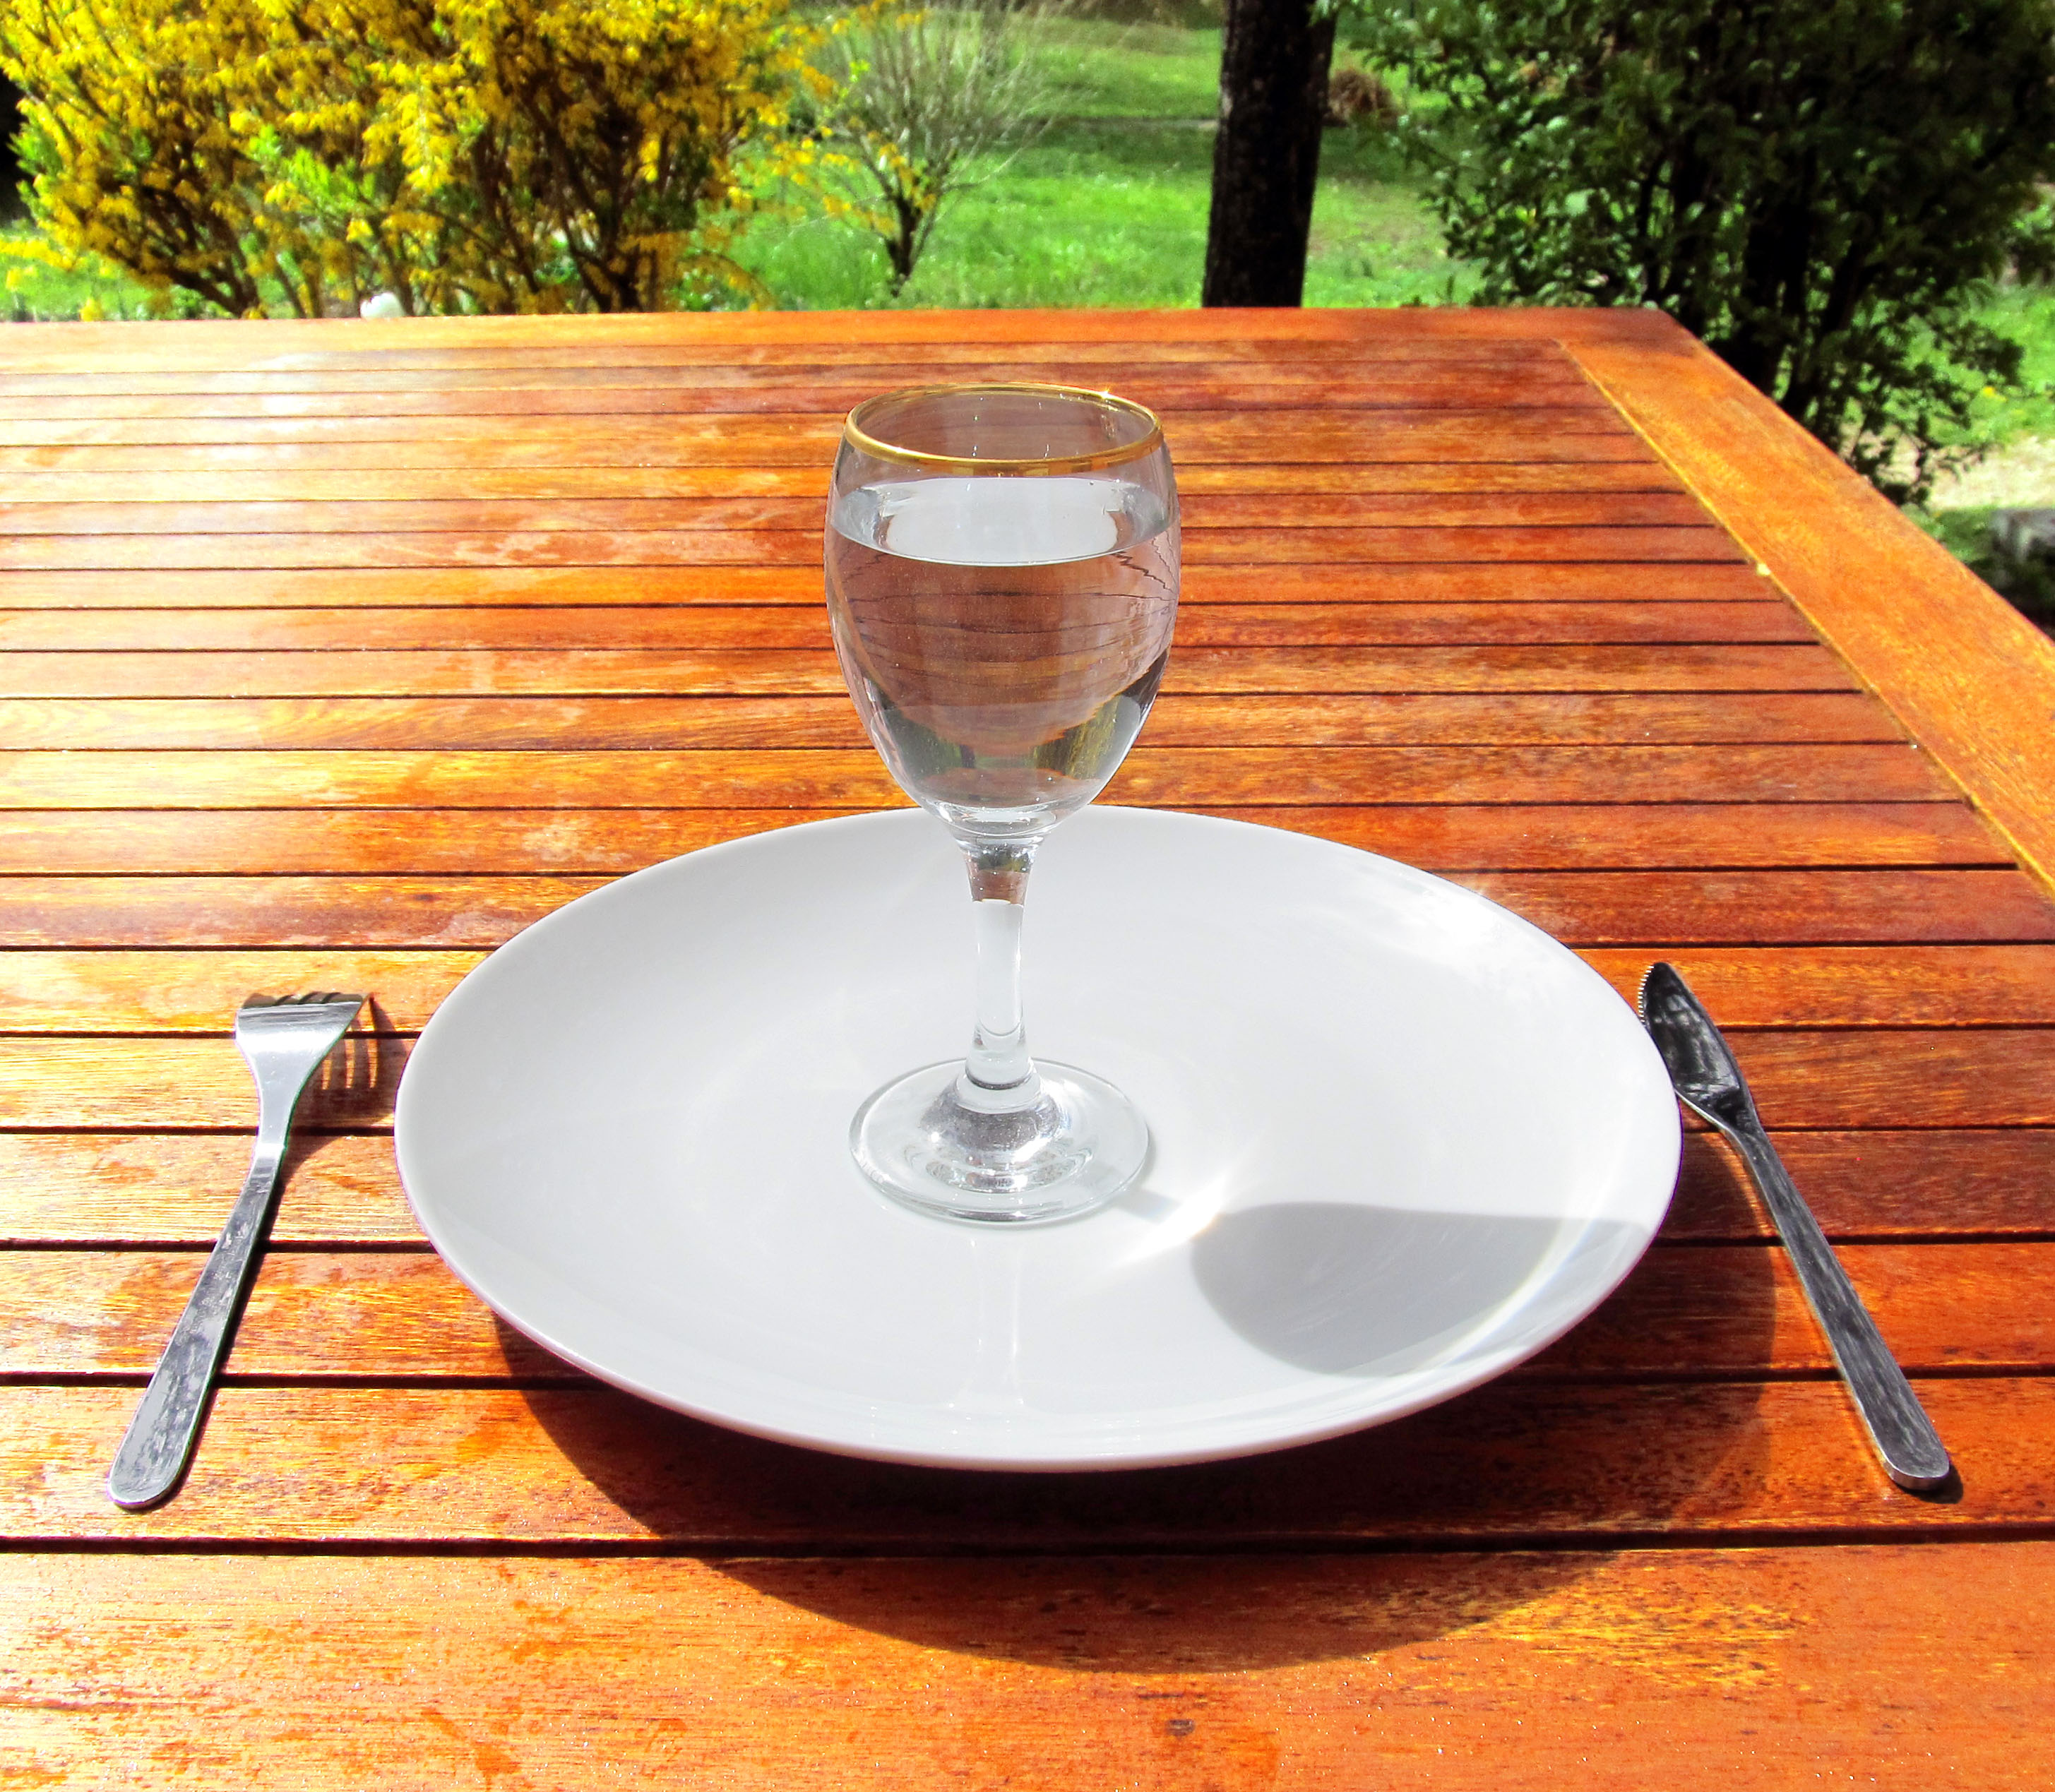 http://upload.wikimedia.org/wikipedia/commons/e/e5/Fasting_4-Fasting-a-glass-of-water-on-an-empty-plate.jpg